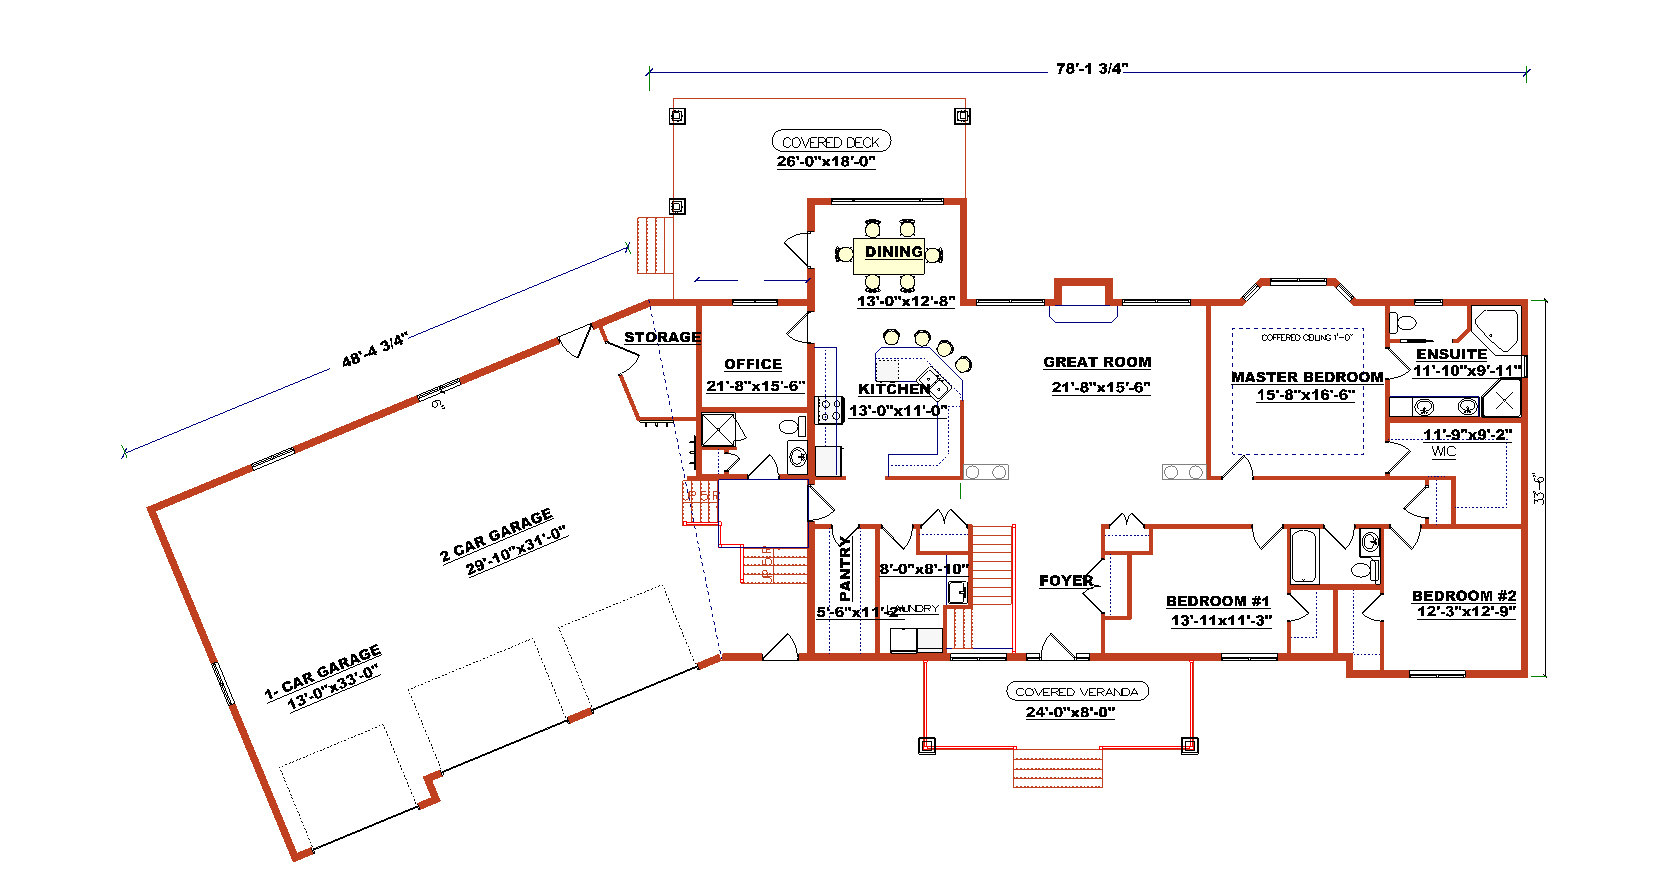 Ranch style floor plans 1700 to 1800 sq ft ranch style for 1800 50 floor